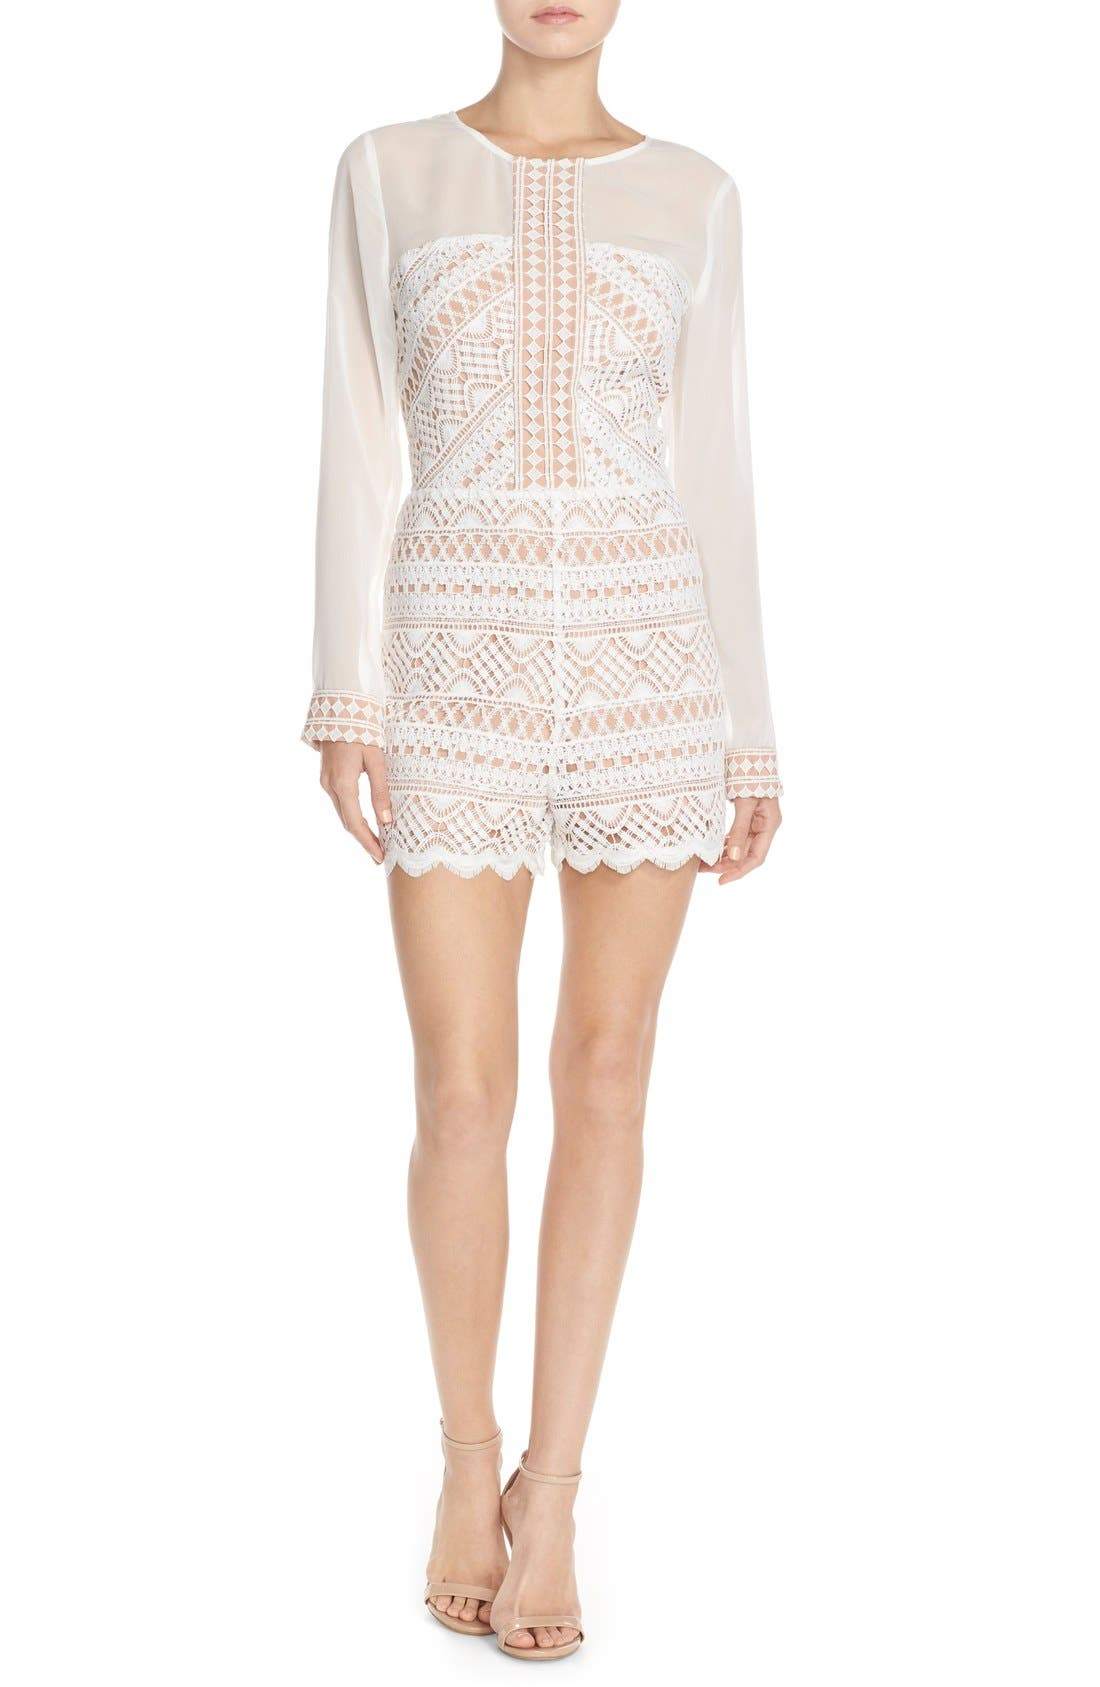 Alternate Image 1 Selected - Adelyn Rae Chiffon & Lace Romper